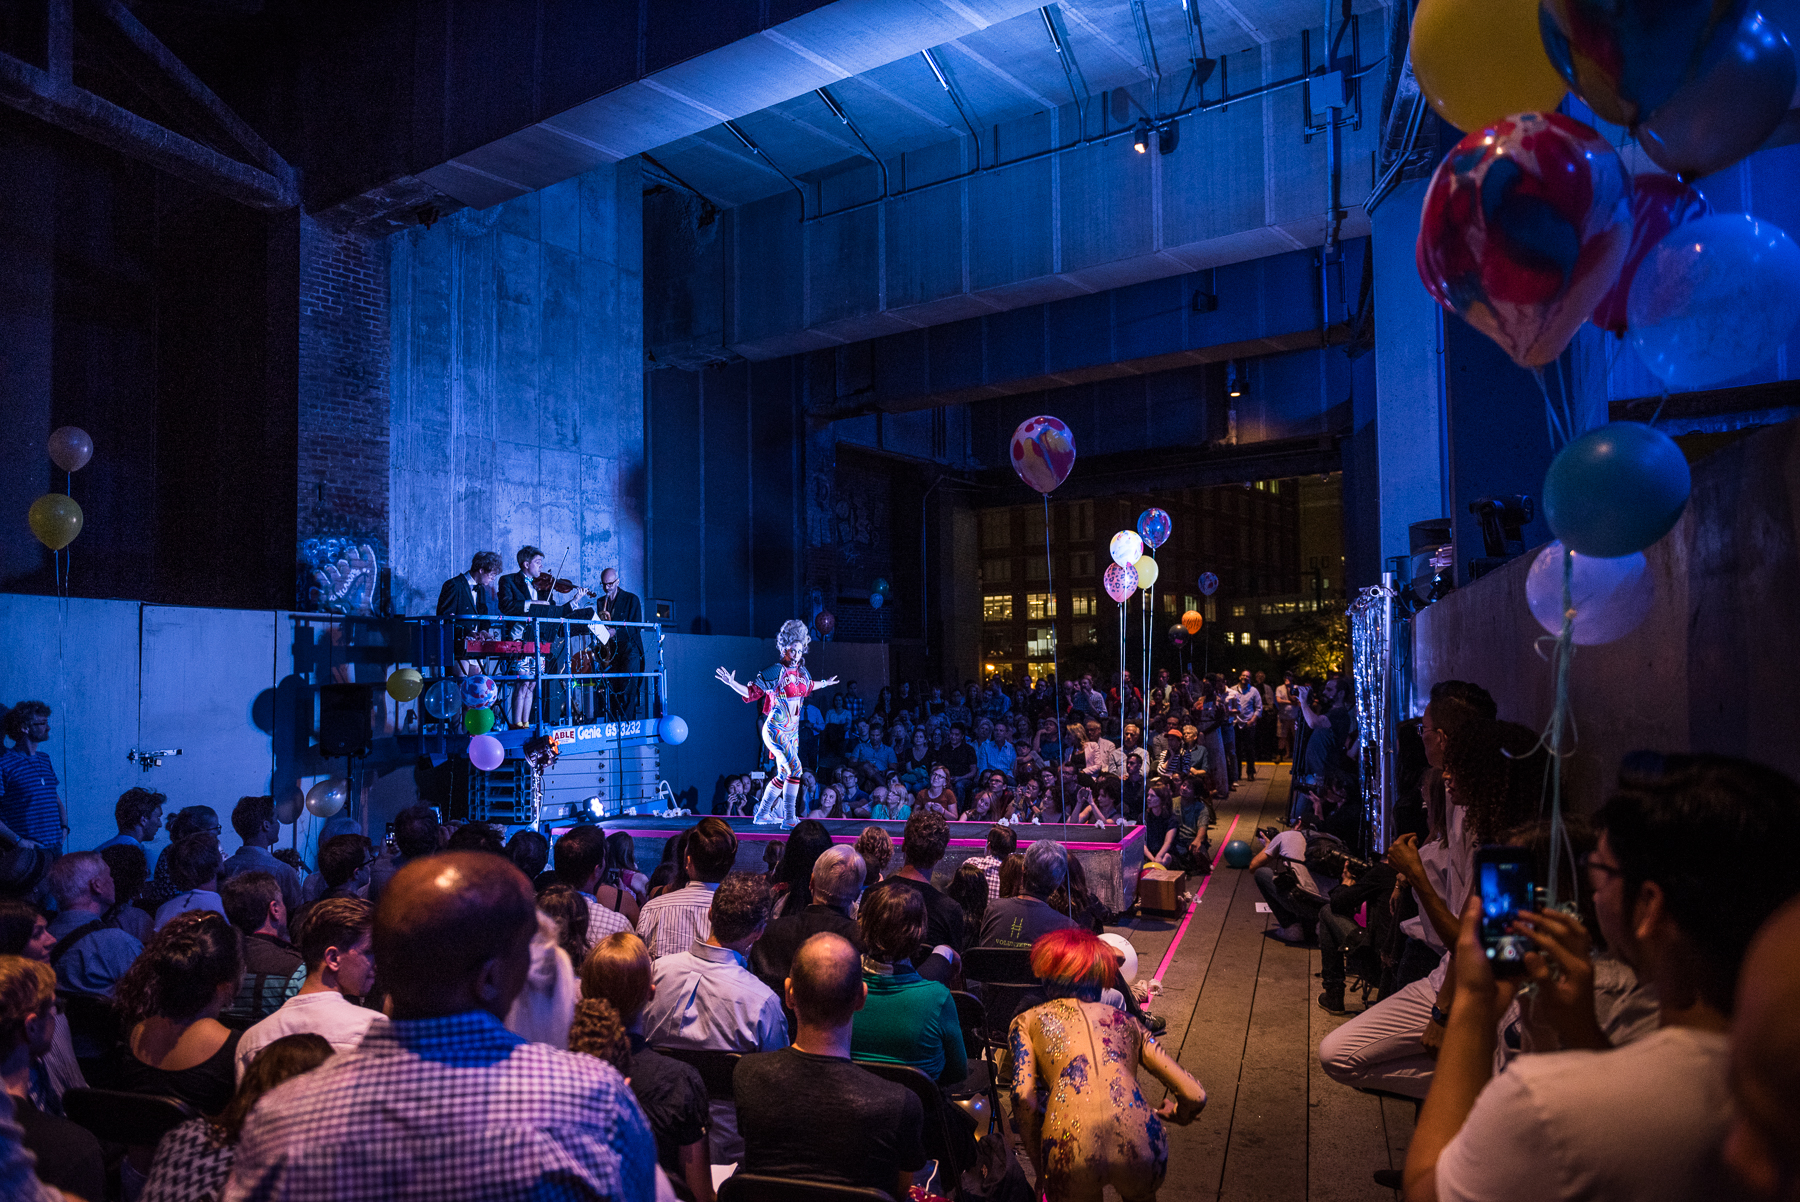 HEARTBEAT ON THE HIGH LINE - September 22, 2016The High Line, NYCHeartbeat Opera was invited to perform as part of the